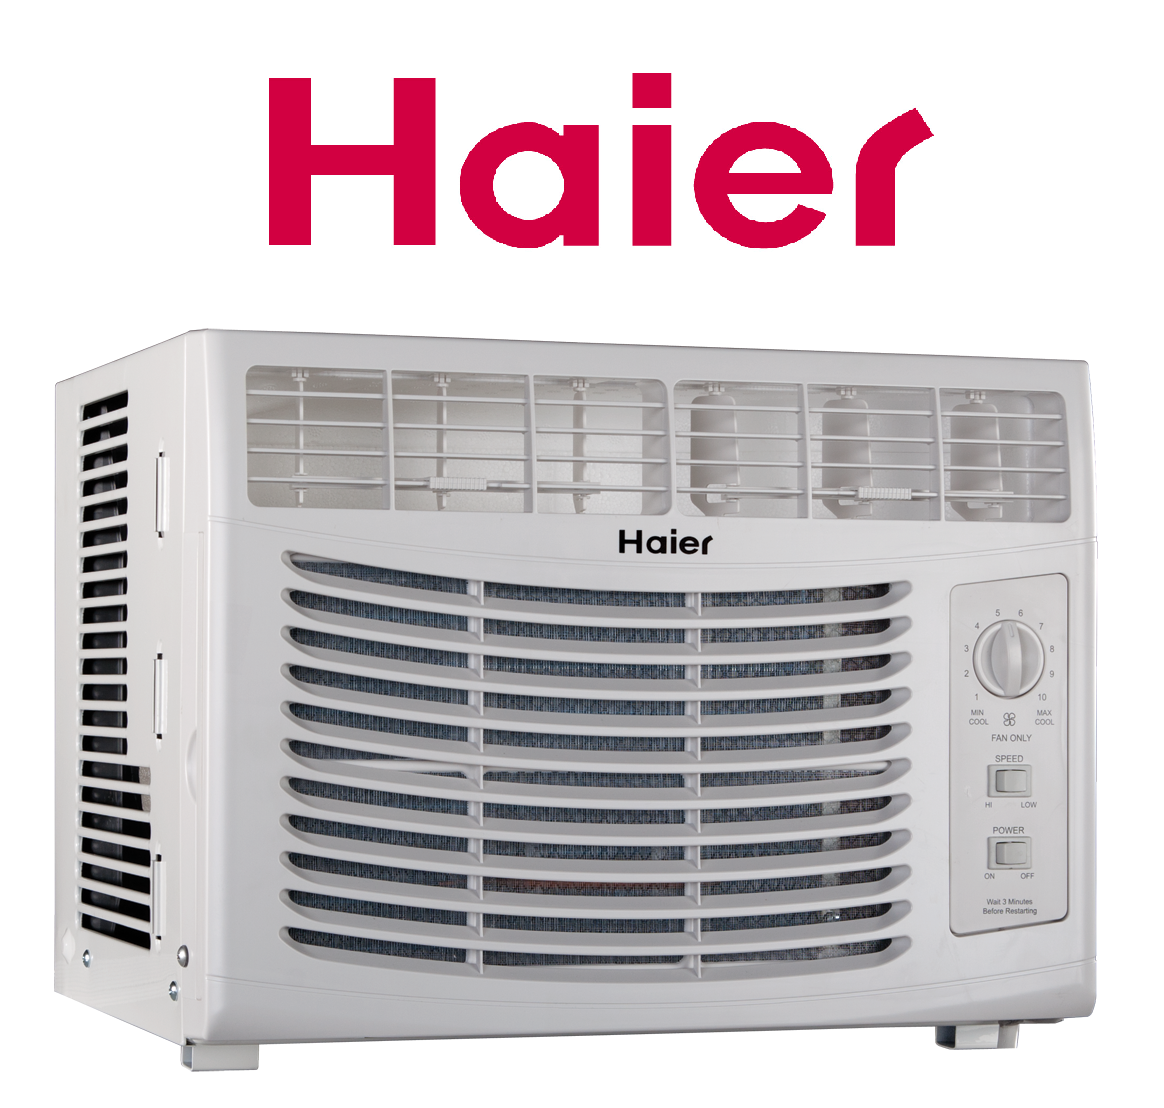 Air conditioning brand Haier